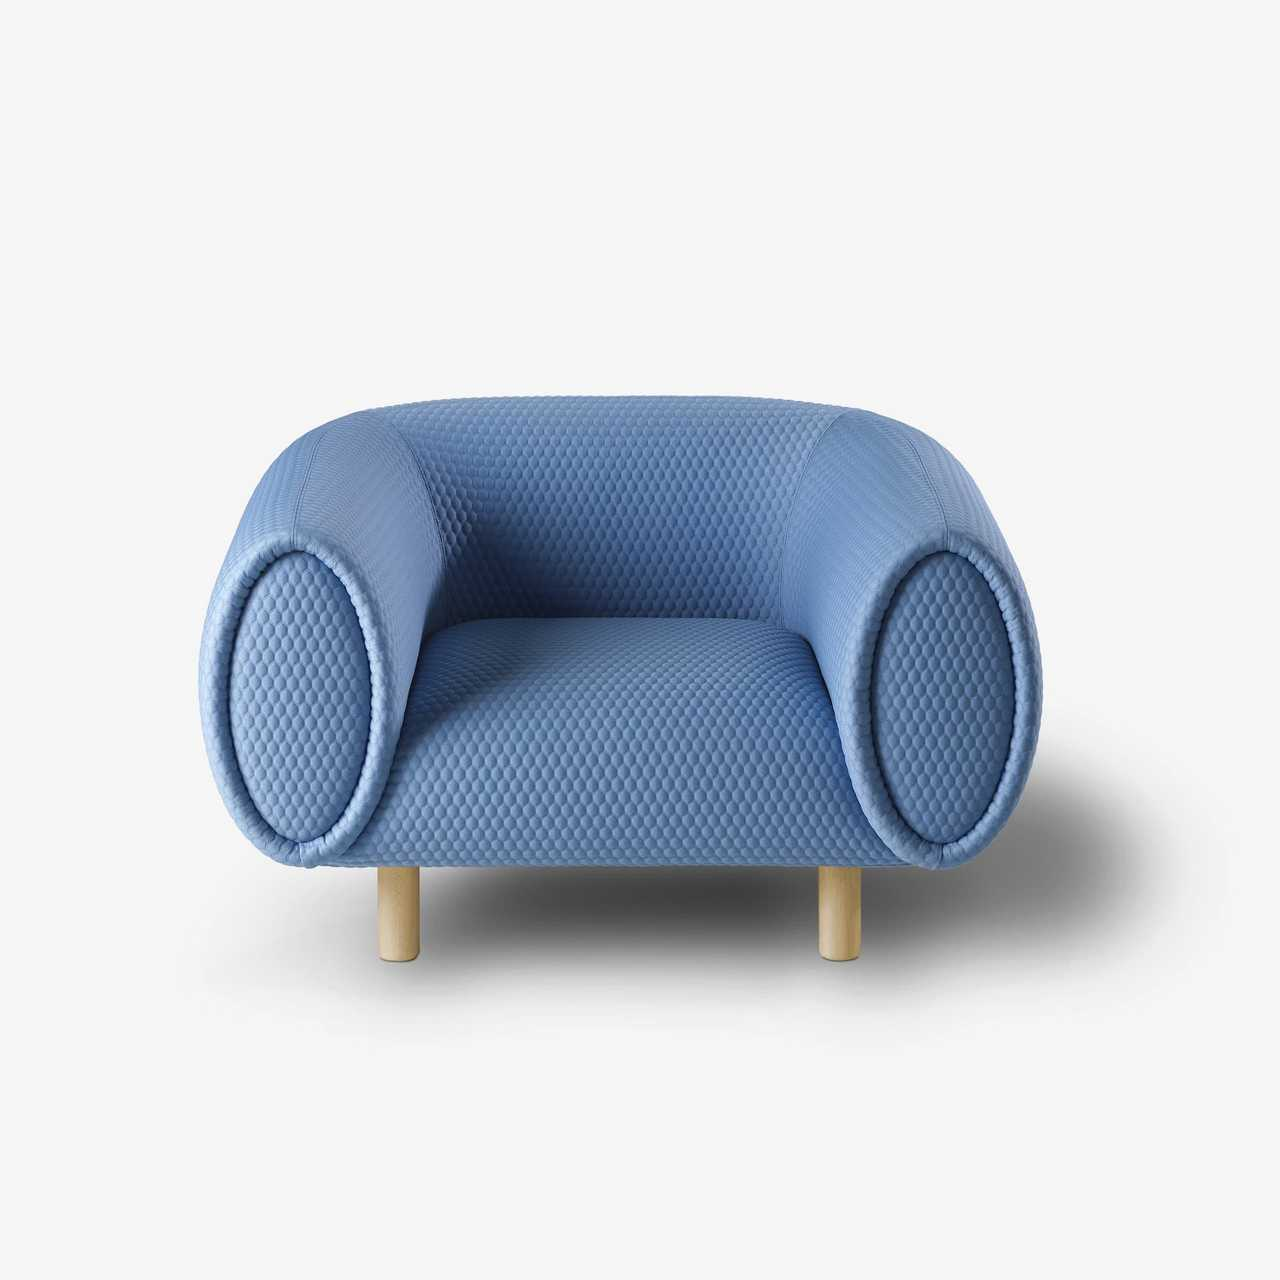 Tobi is a modern sofa design by Rexite that portrays Timeless Elegance